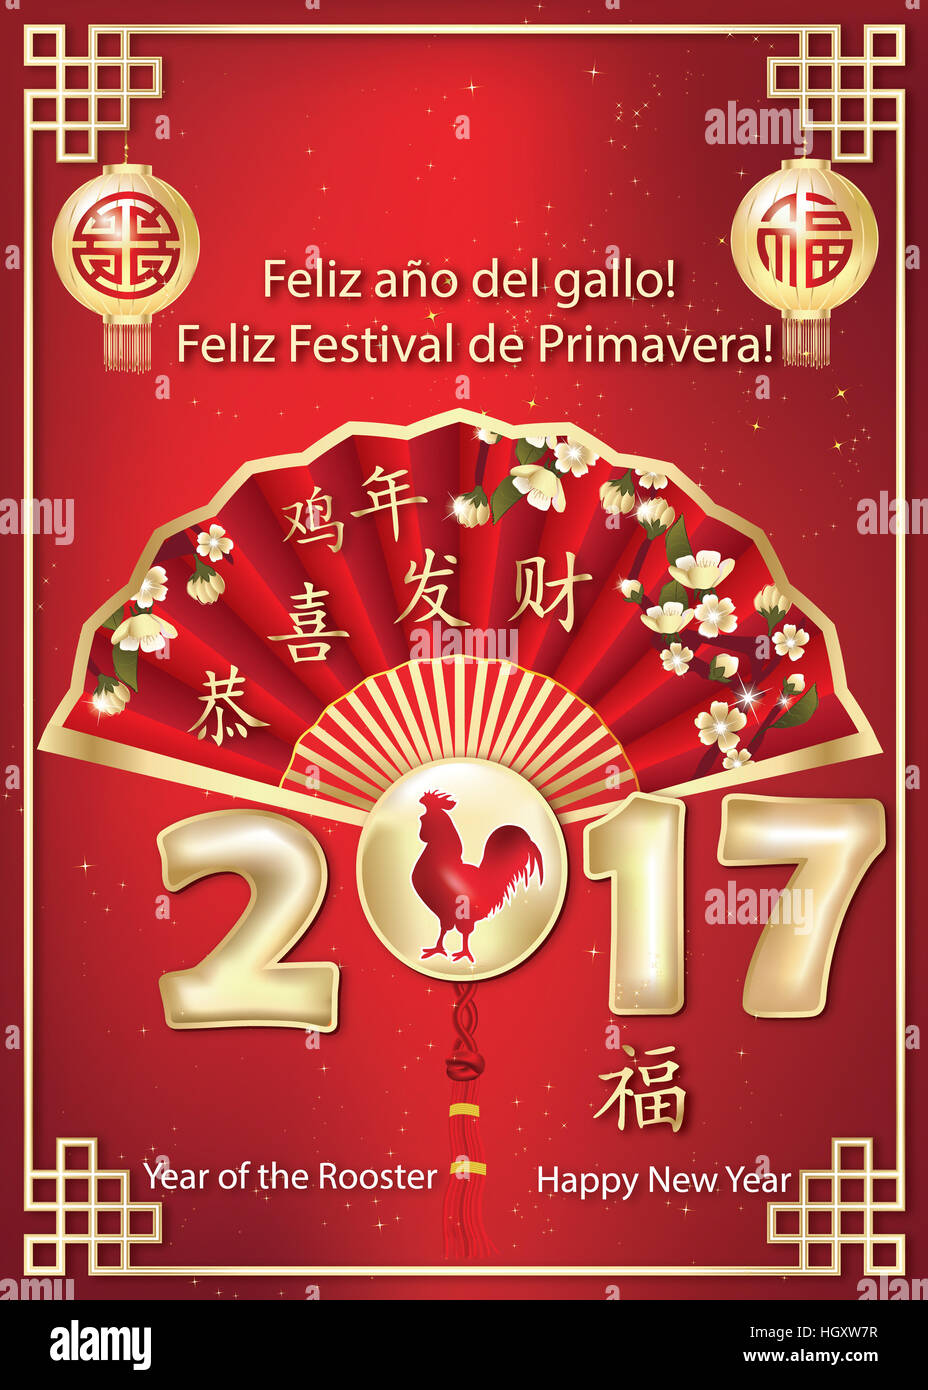 Happy new year of the rooster happy spring festival spanish stock happy new year of the rooster happy spring festival spanish greeting card for chinese new year 2017 m4hsunfo